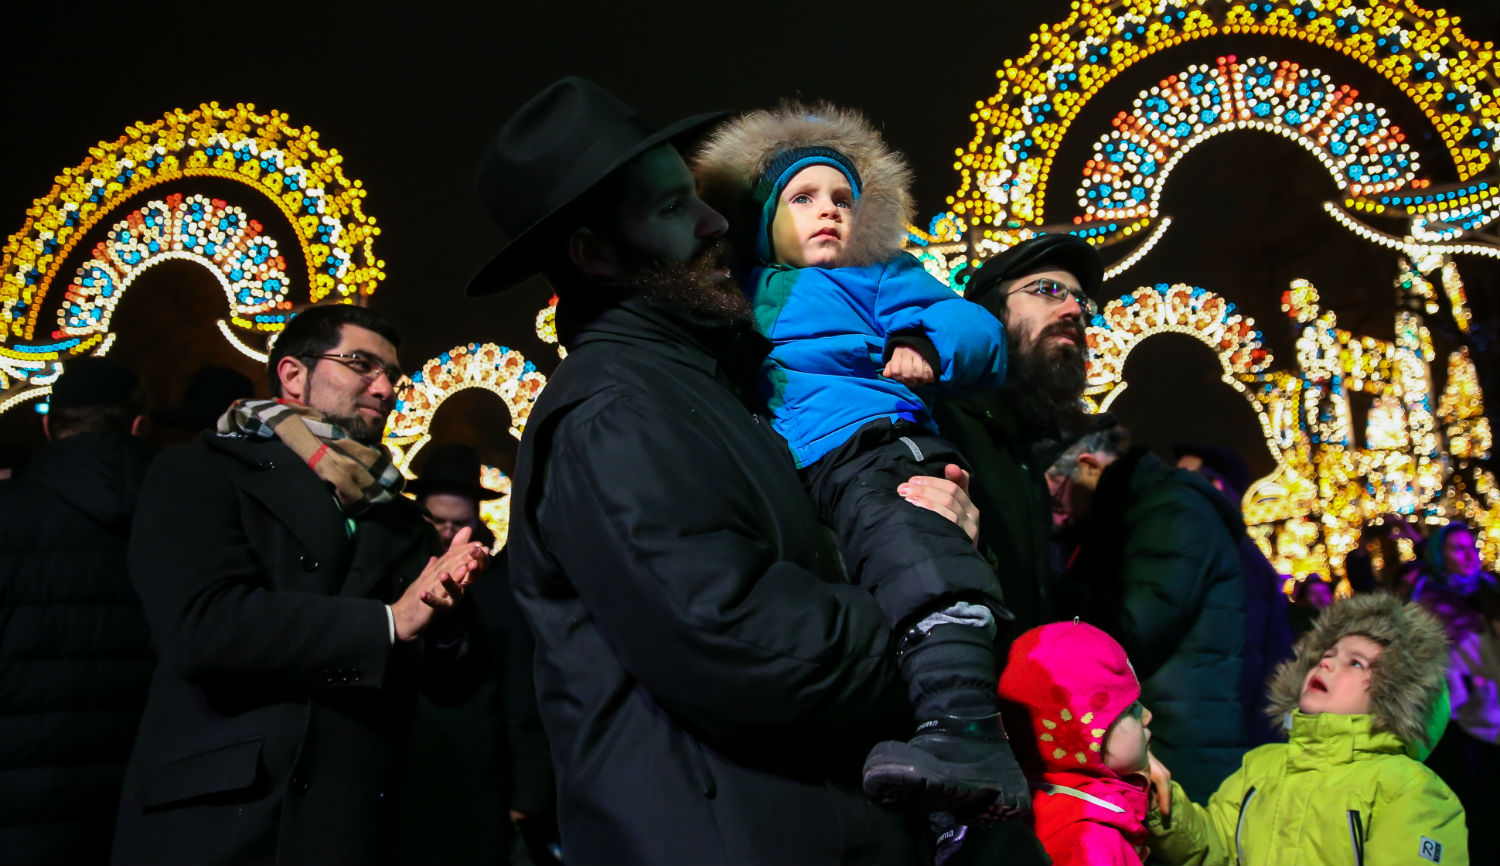 A Hanukkah celebration in Moscow's Revolution Square in December 2016. Artyom GeodakyanTASS via Getty Images.